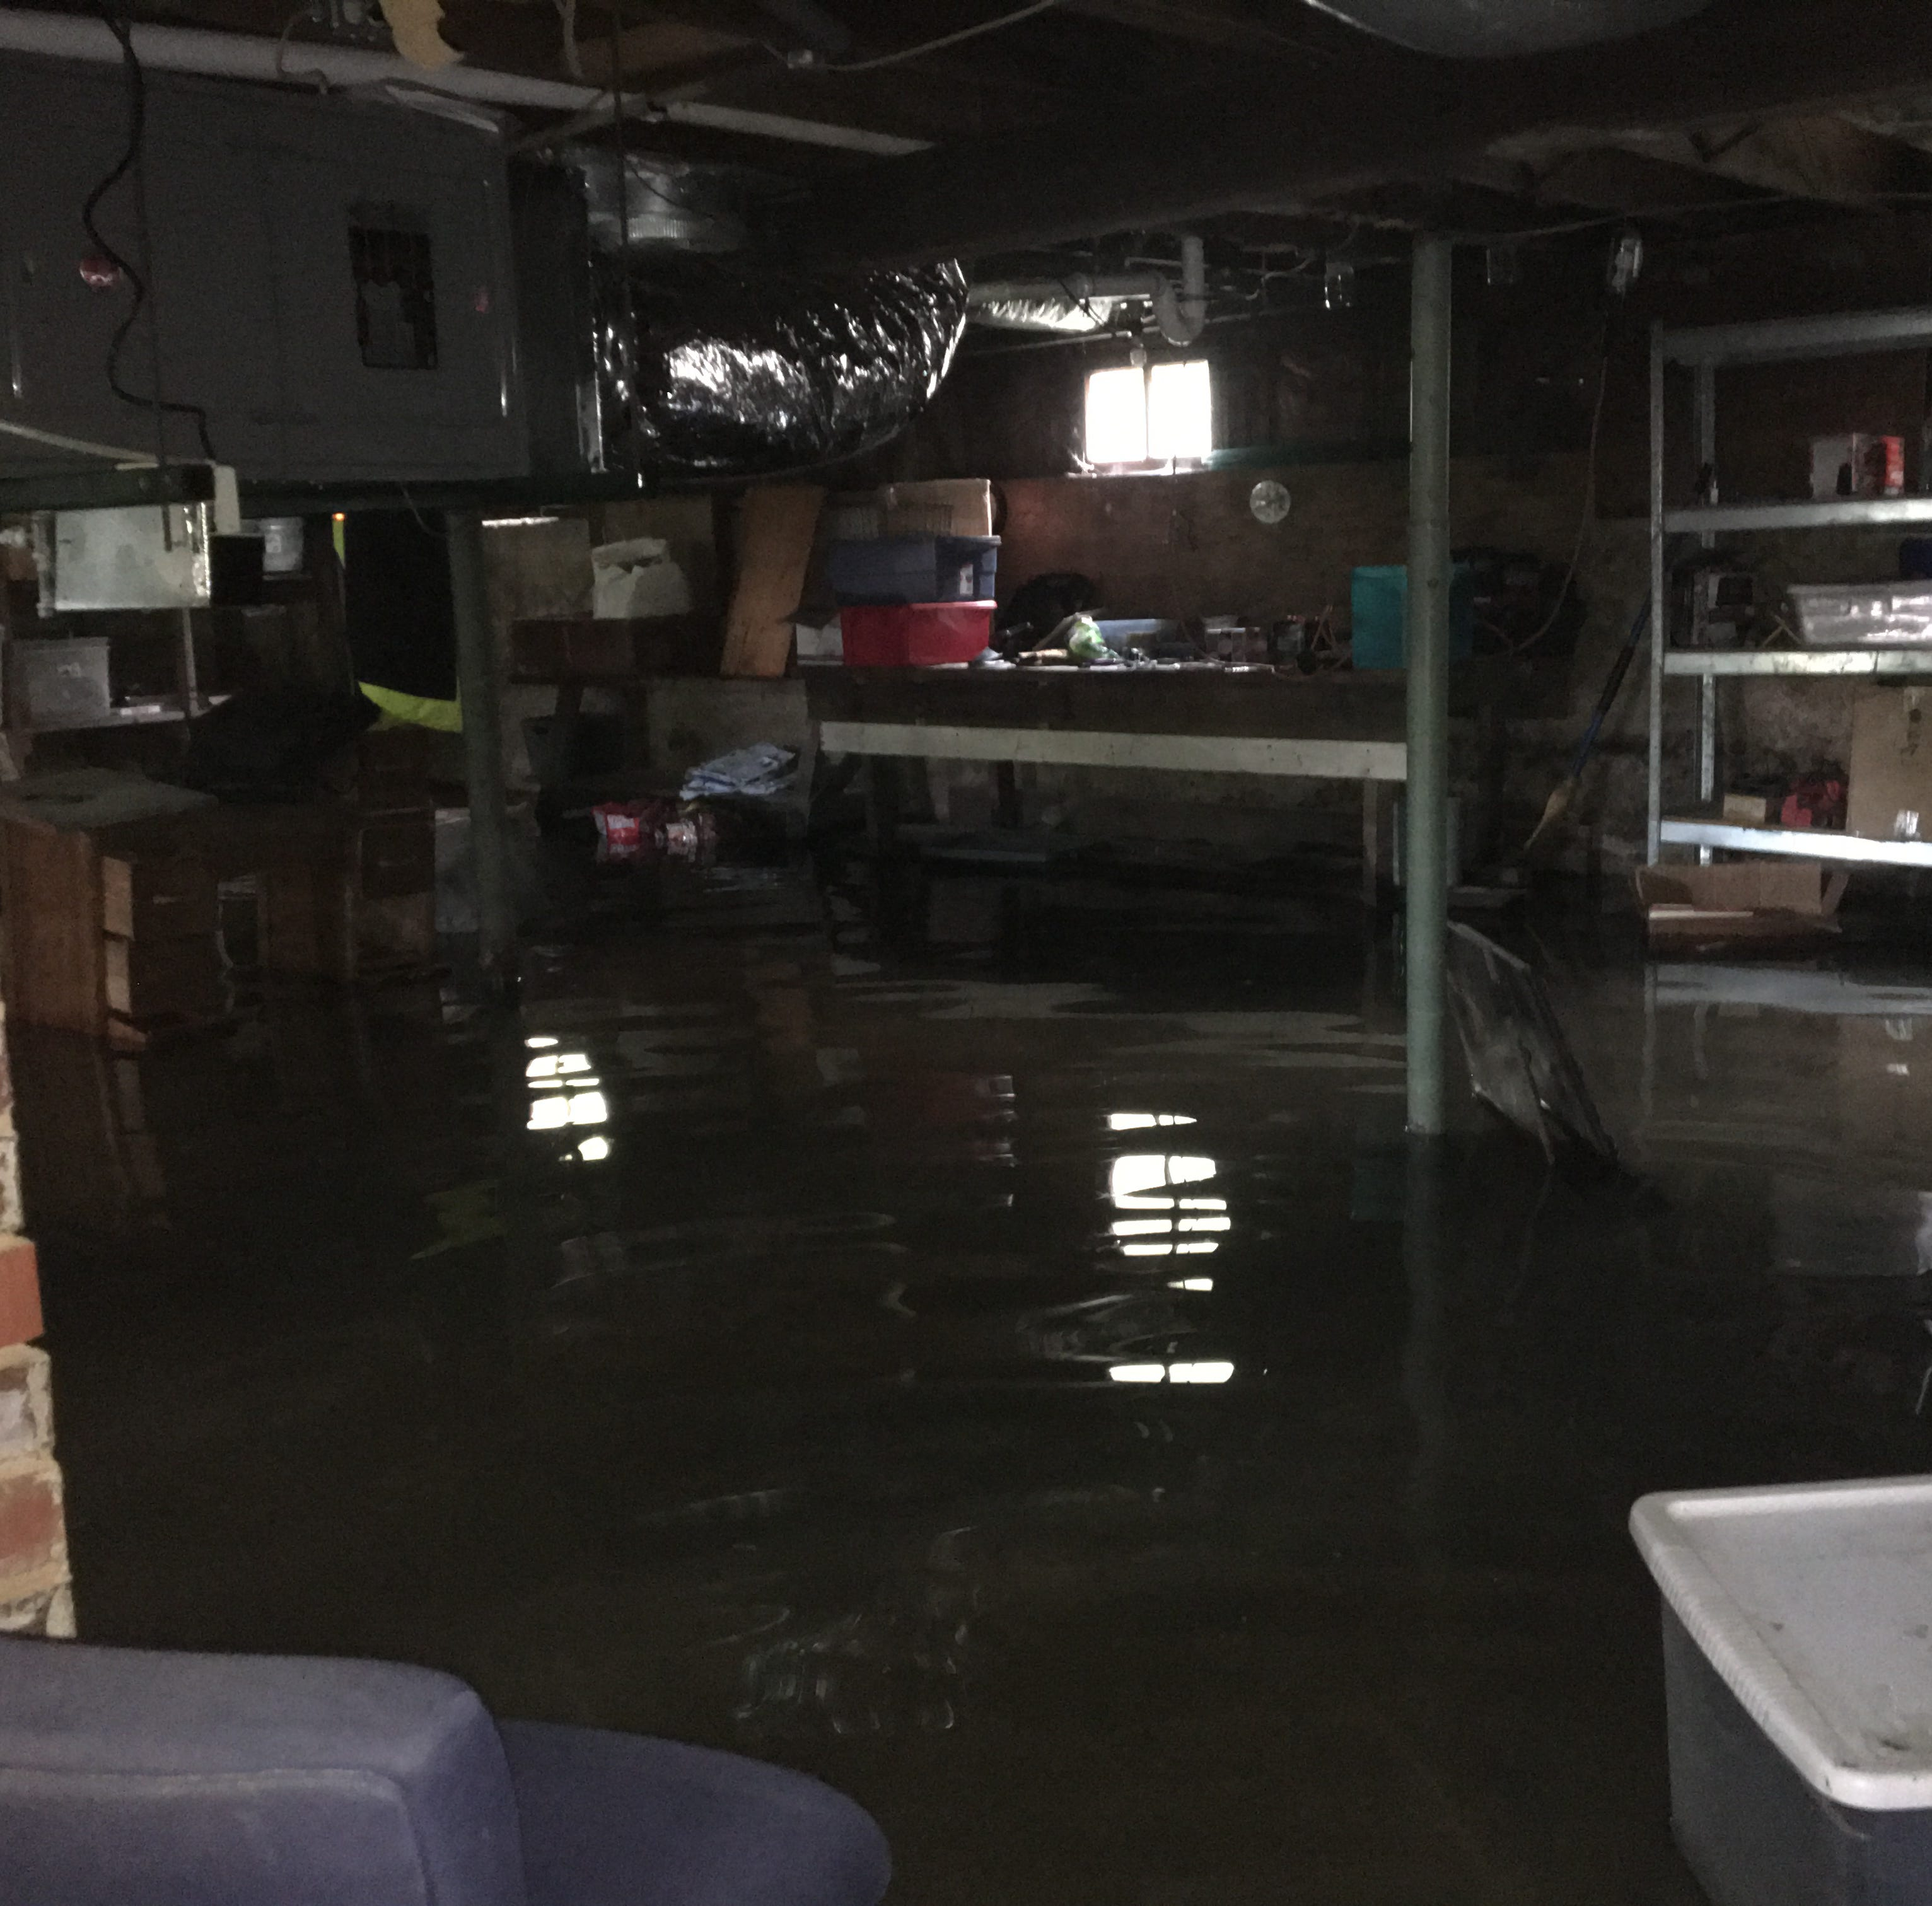 Waynesboro South Bath Avenue residents face flooded basements, decisions to evacuate or stay